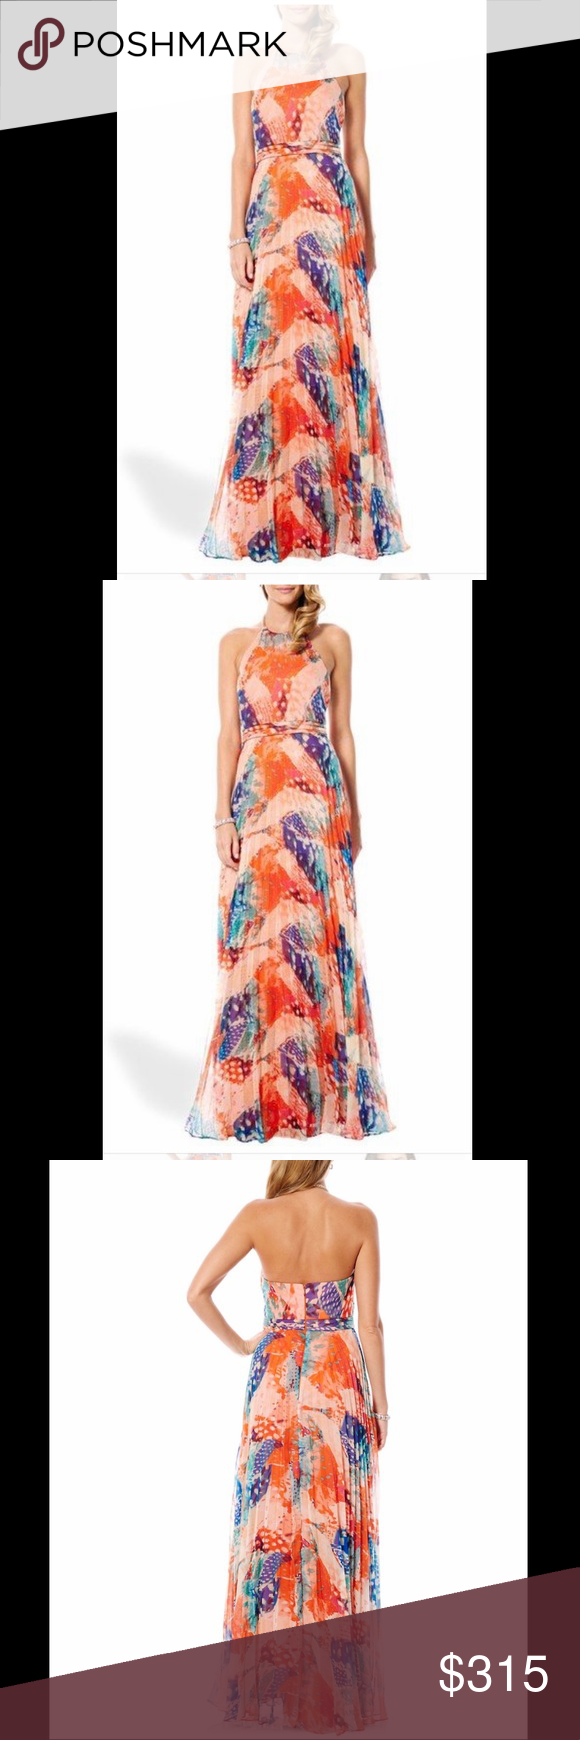 Watercolor Halter Maxi Dress Brand New With Tags Sold Out Retail 345 Laundry By Shelli Segal For Anthropol Halter Maxi Dresses Orange Maxi Dress Maxi Dress [ 1740 x 580 Pixel ]